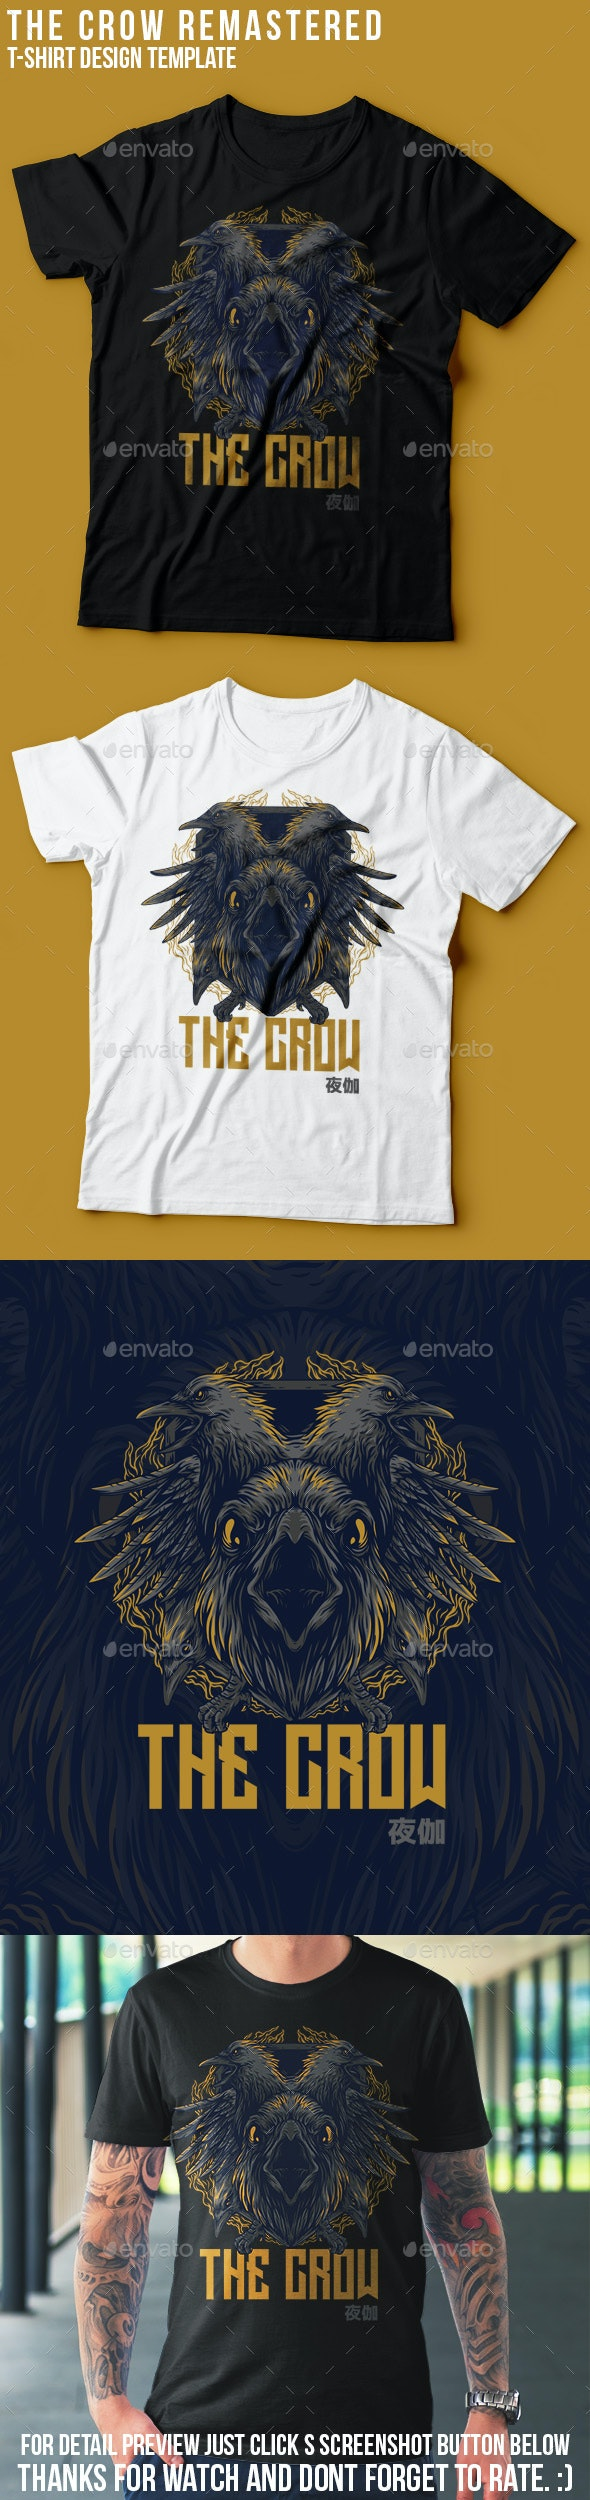 The Crow Remastered T-Shirt Design - Sports & Teams T-Shirts